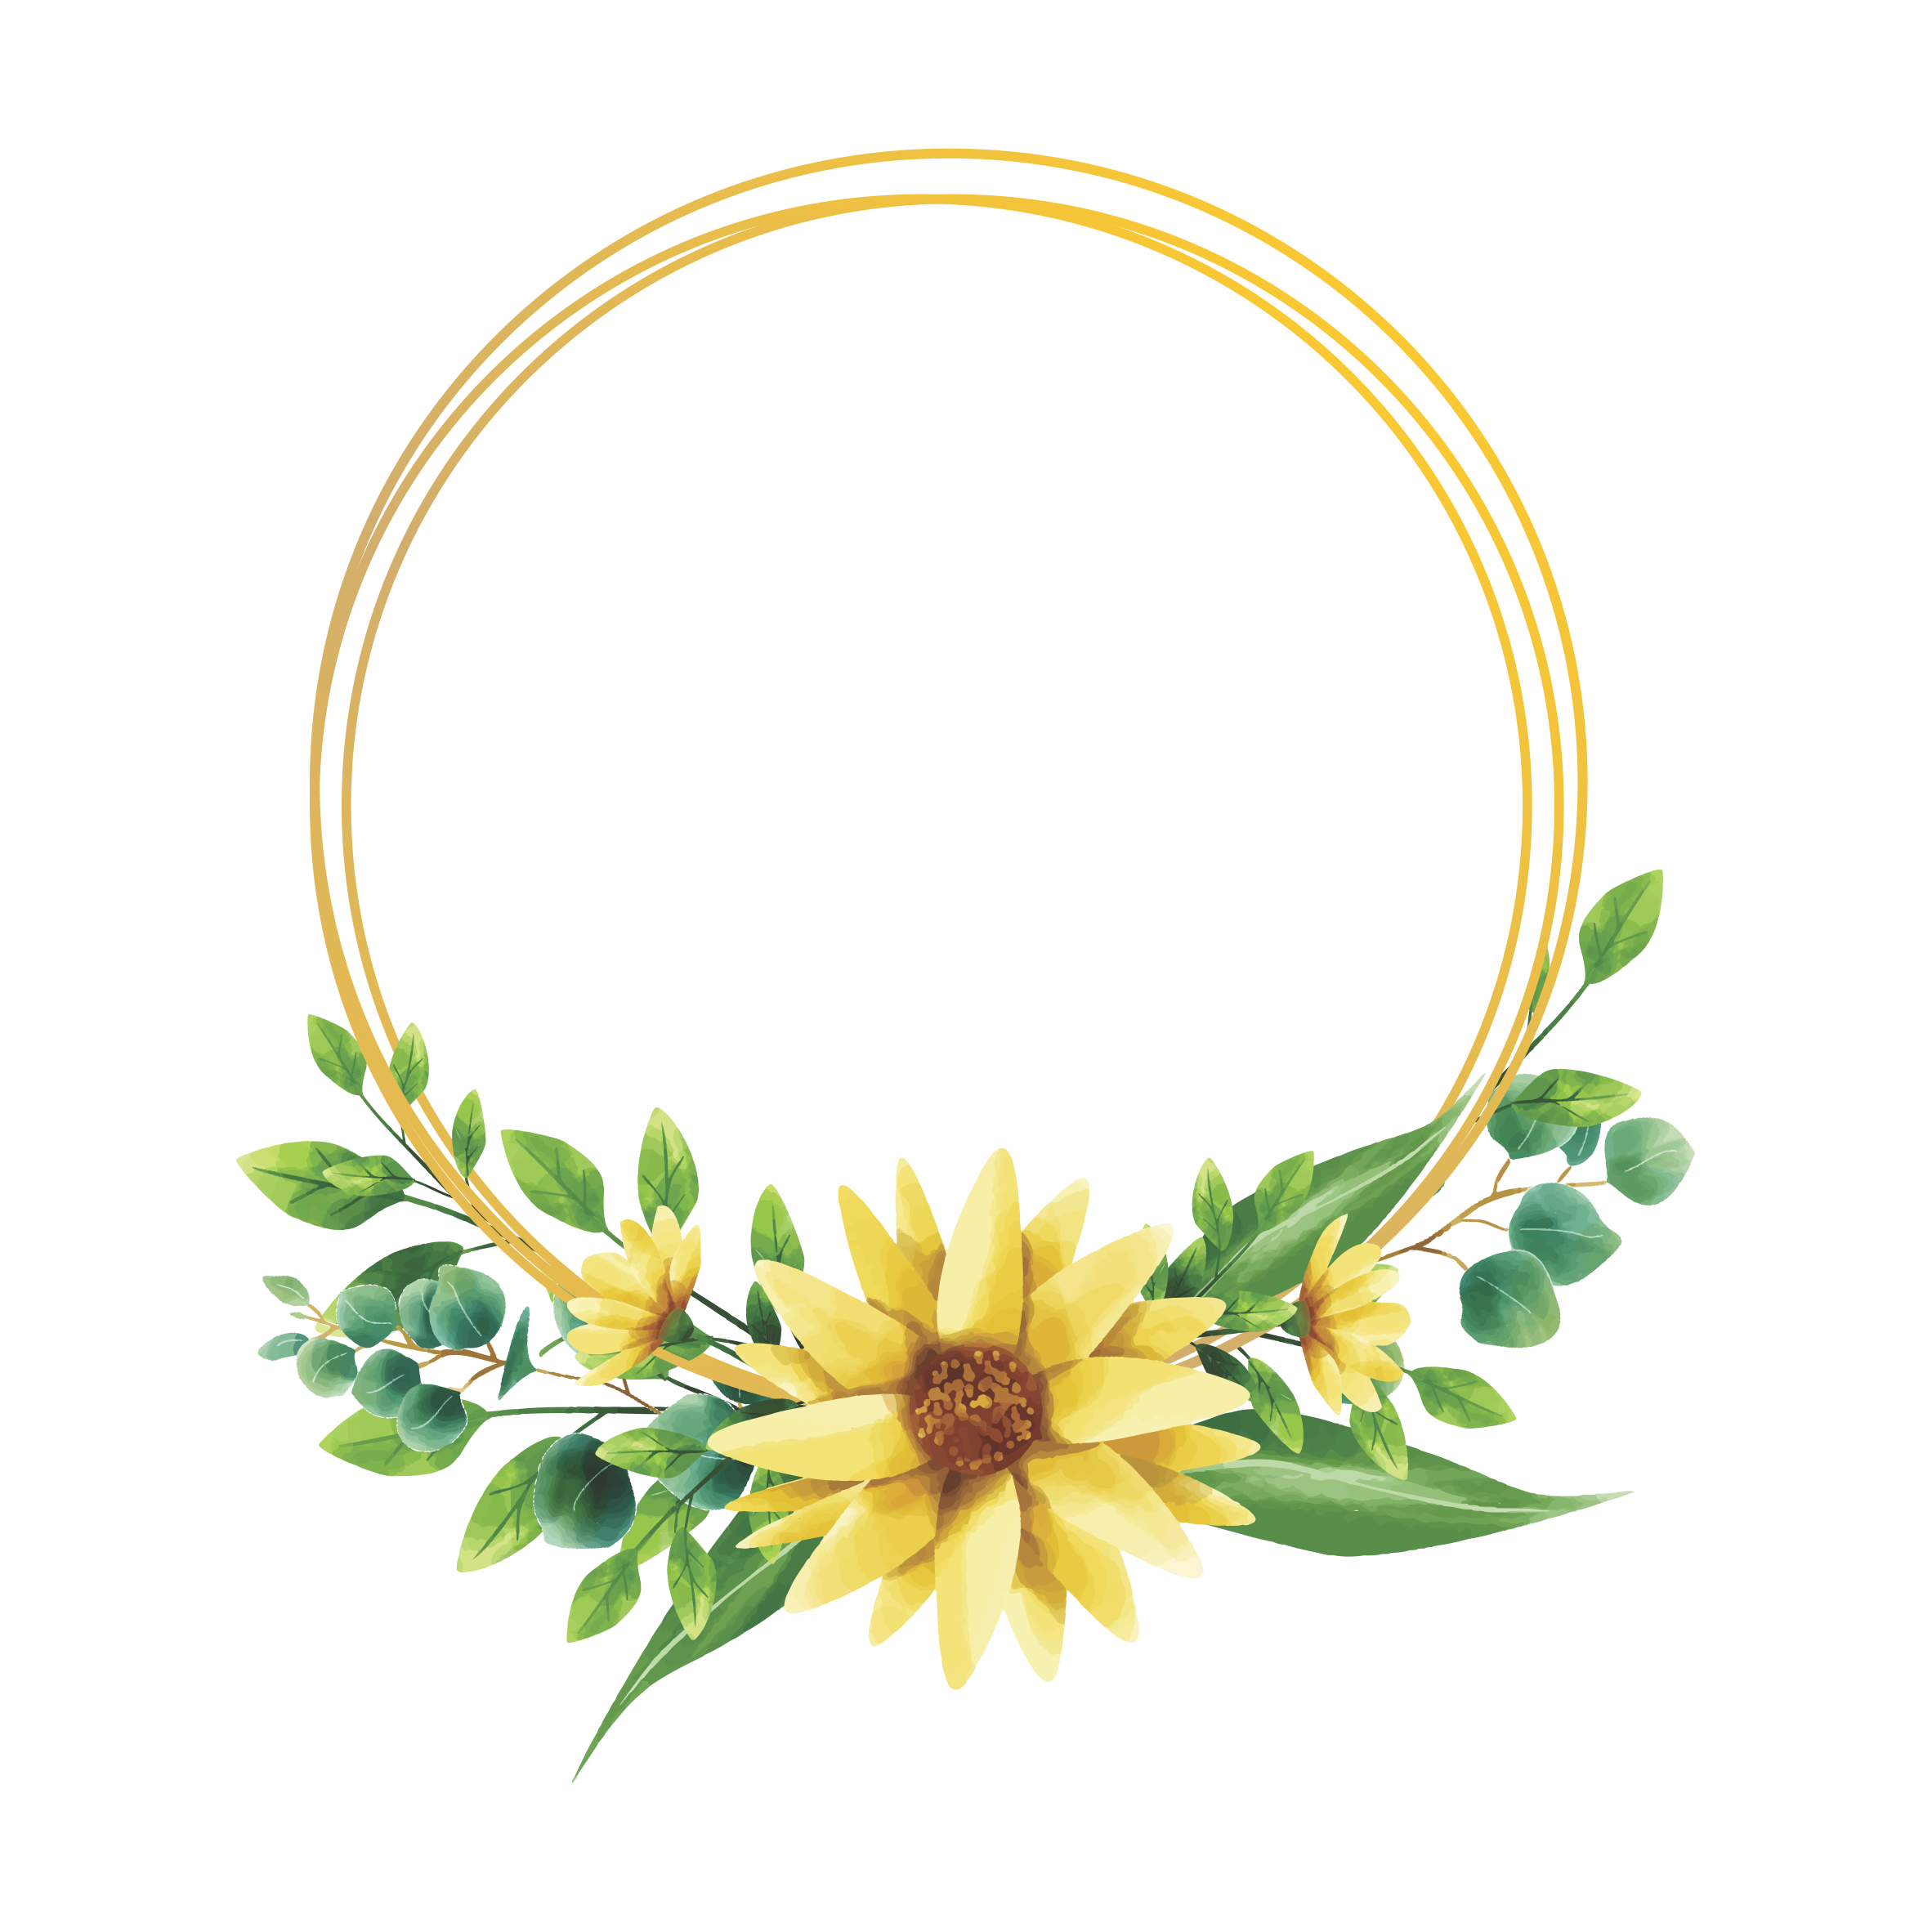 watercolor style sunflower frame design - Download Free ...